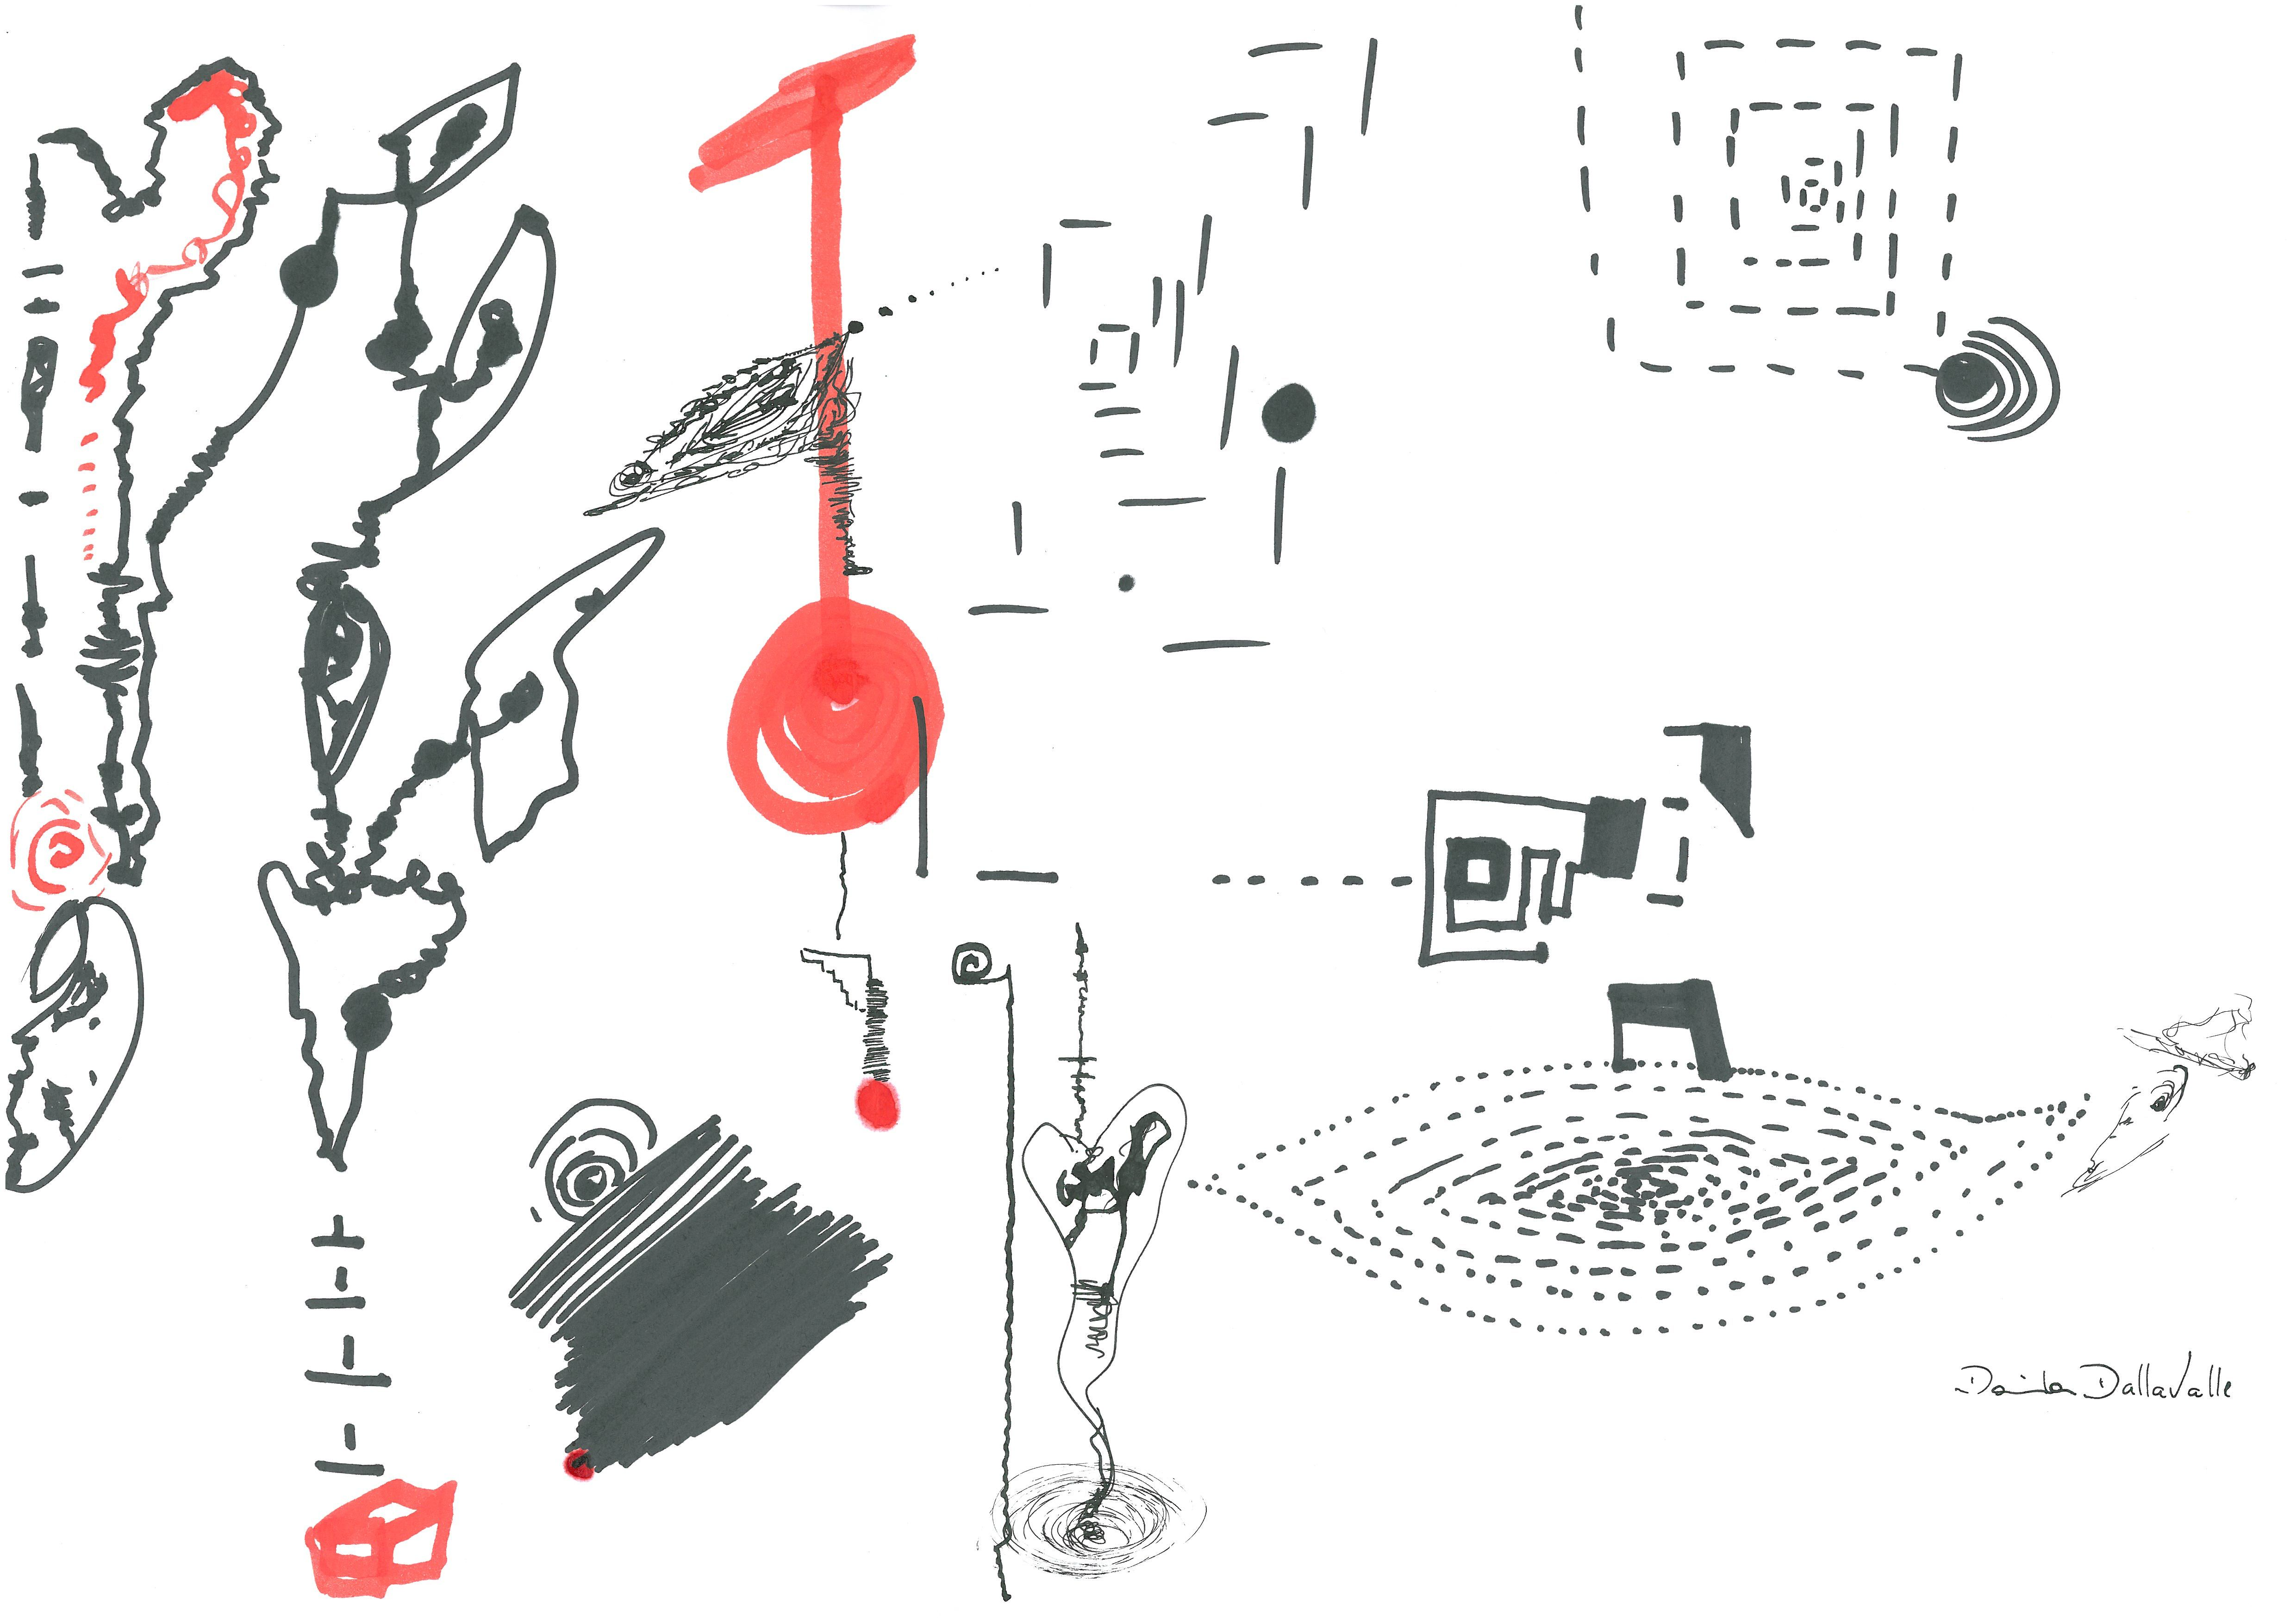 DARTGR1215041 #cube #abstract #paint  #Red #Black #White #Life #design #sketches #DanielaDallavalle #ink #art